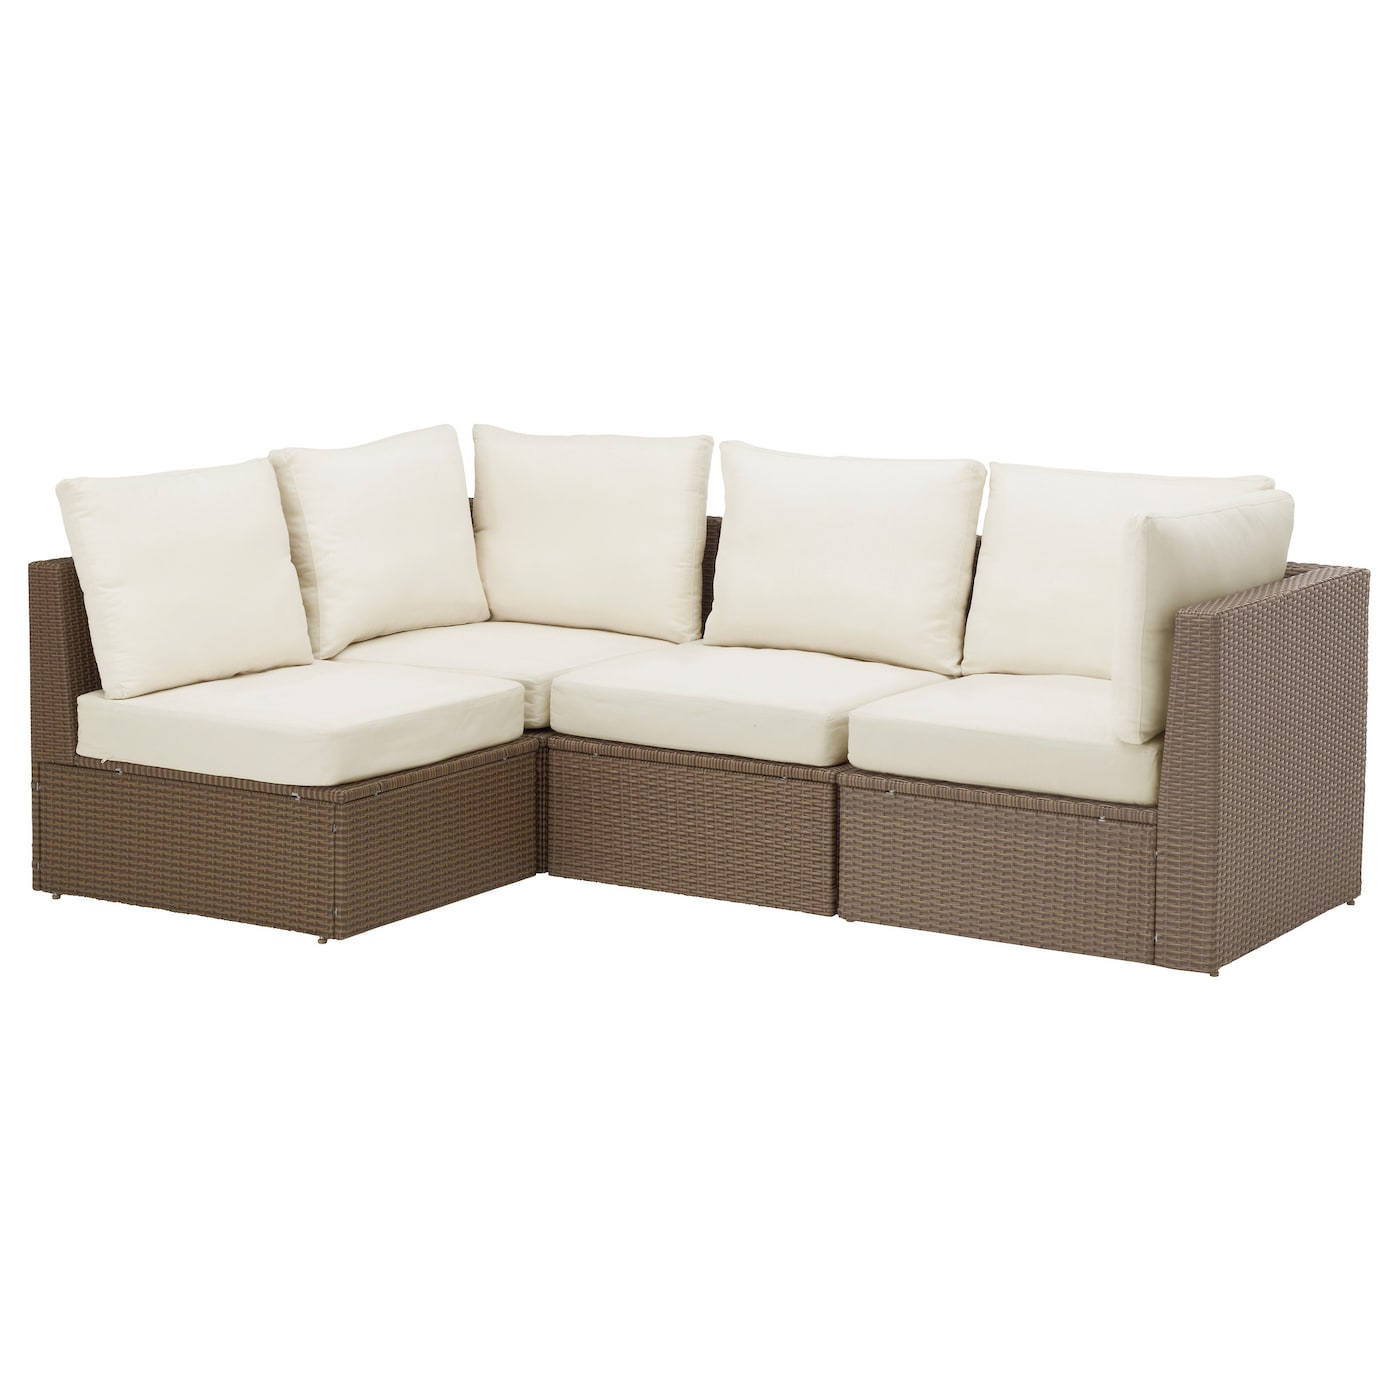 Arholma corner sofa 3 1 outdoor brown beige 141 217x76x66 for Sofa exterior 120 cm